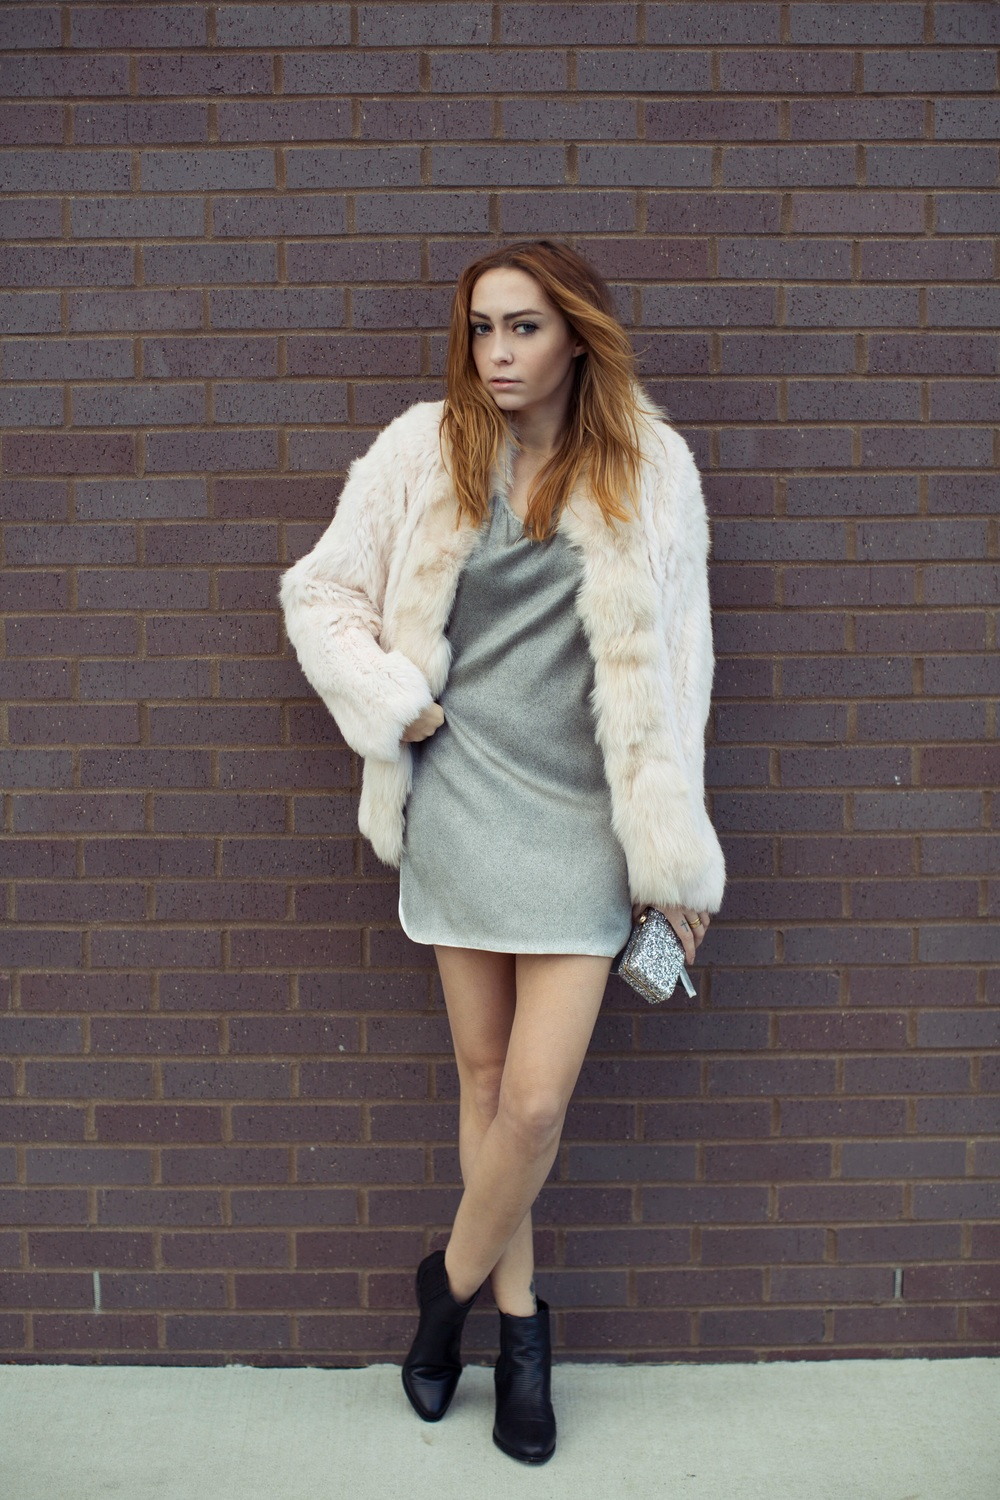 Jacket - Elizabeth & James  | Dress - Aviu |  Boots - Senso  |  Clutch - Deux Lux  ||  photos by Susannah Brittany